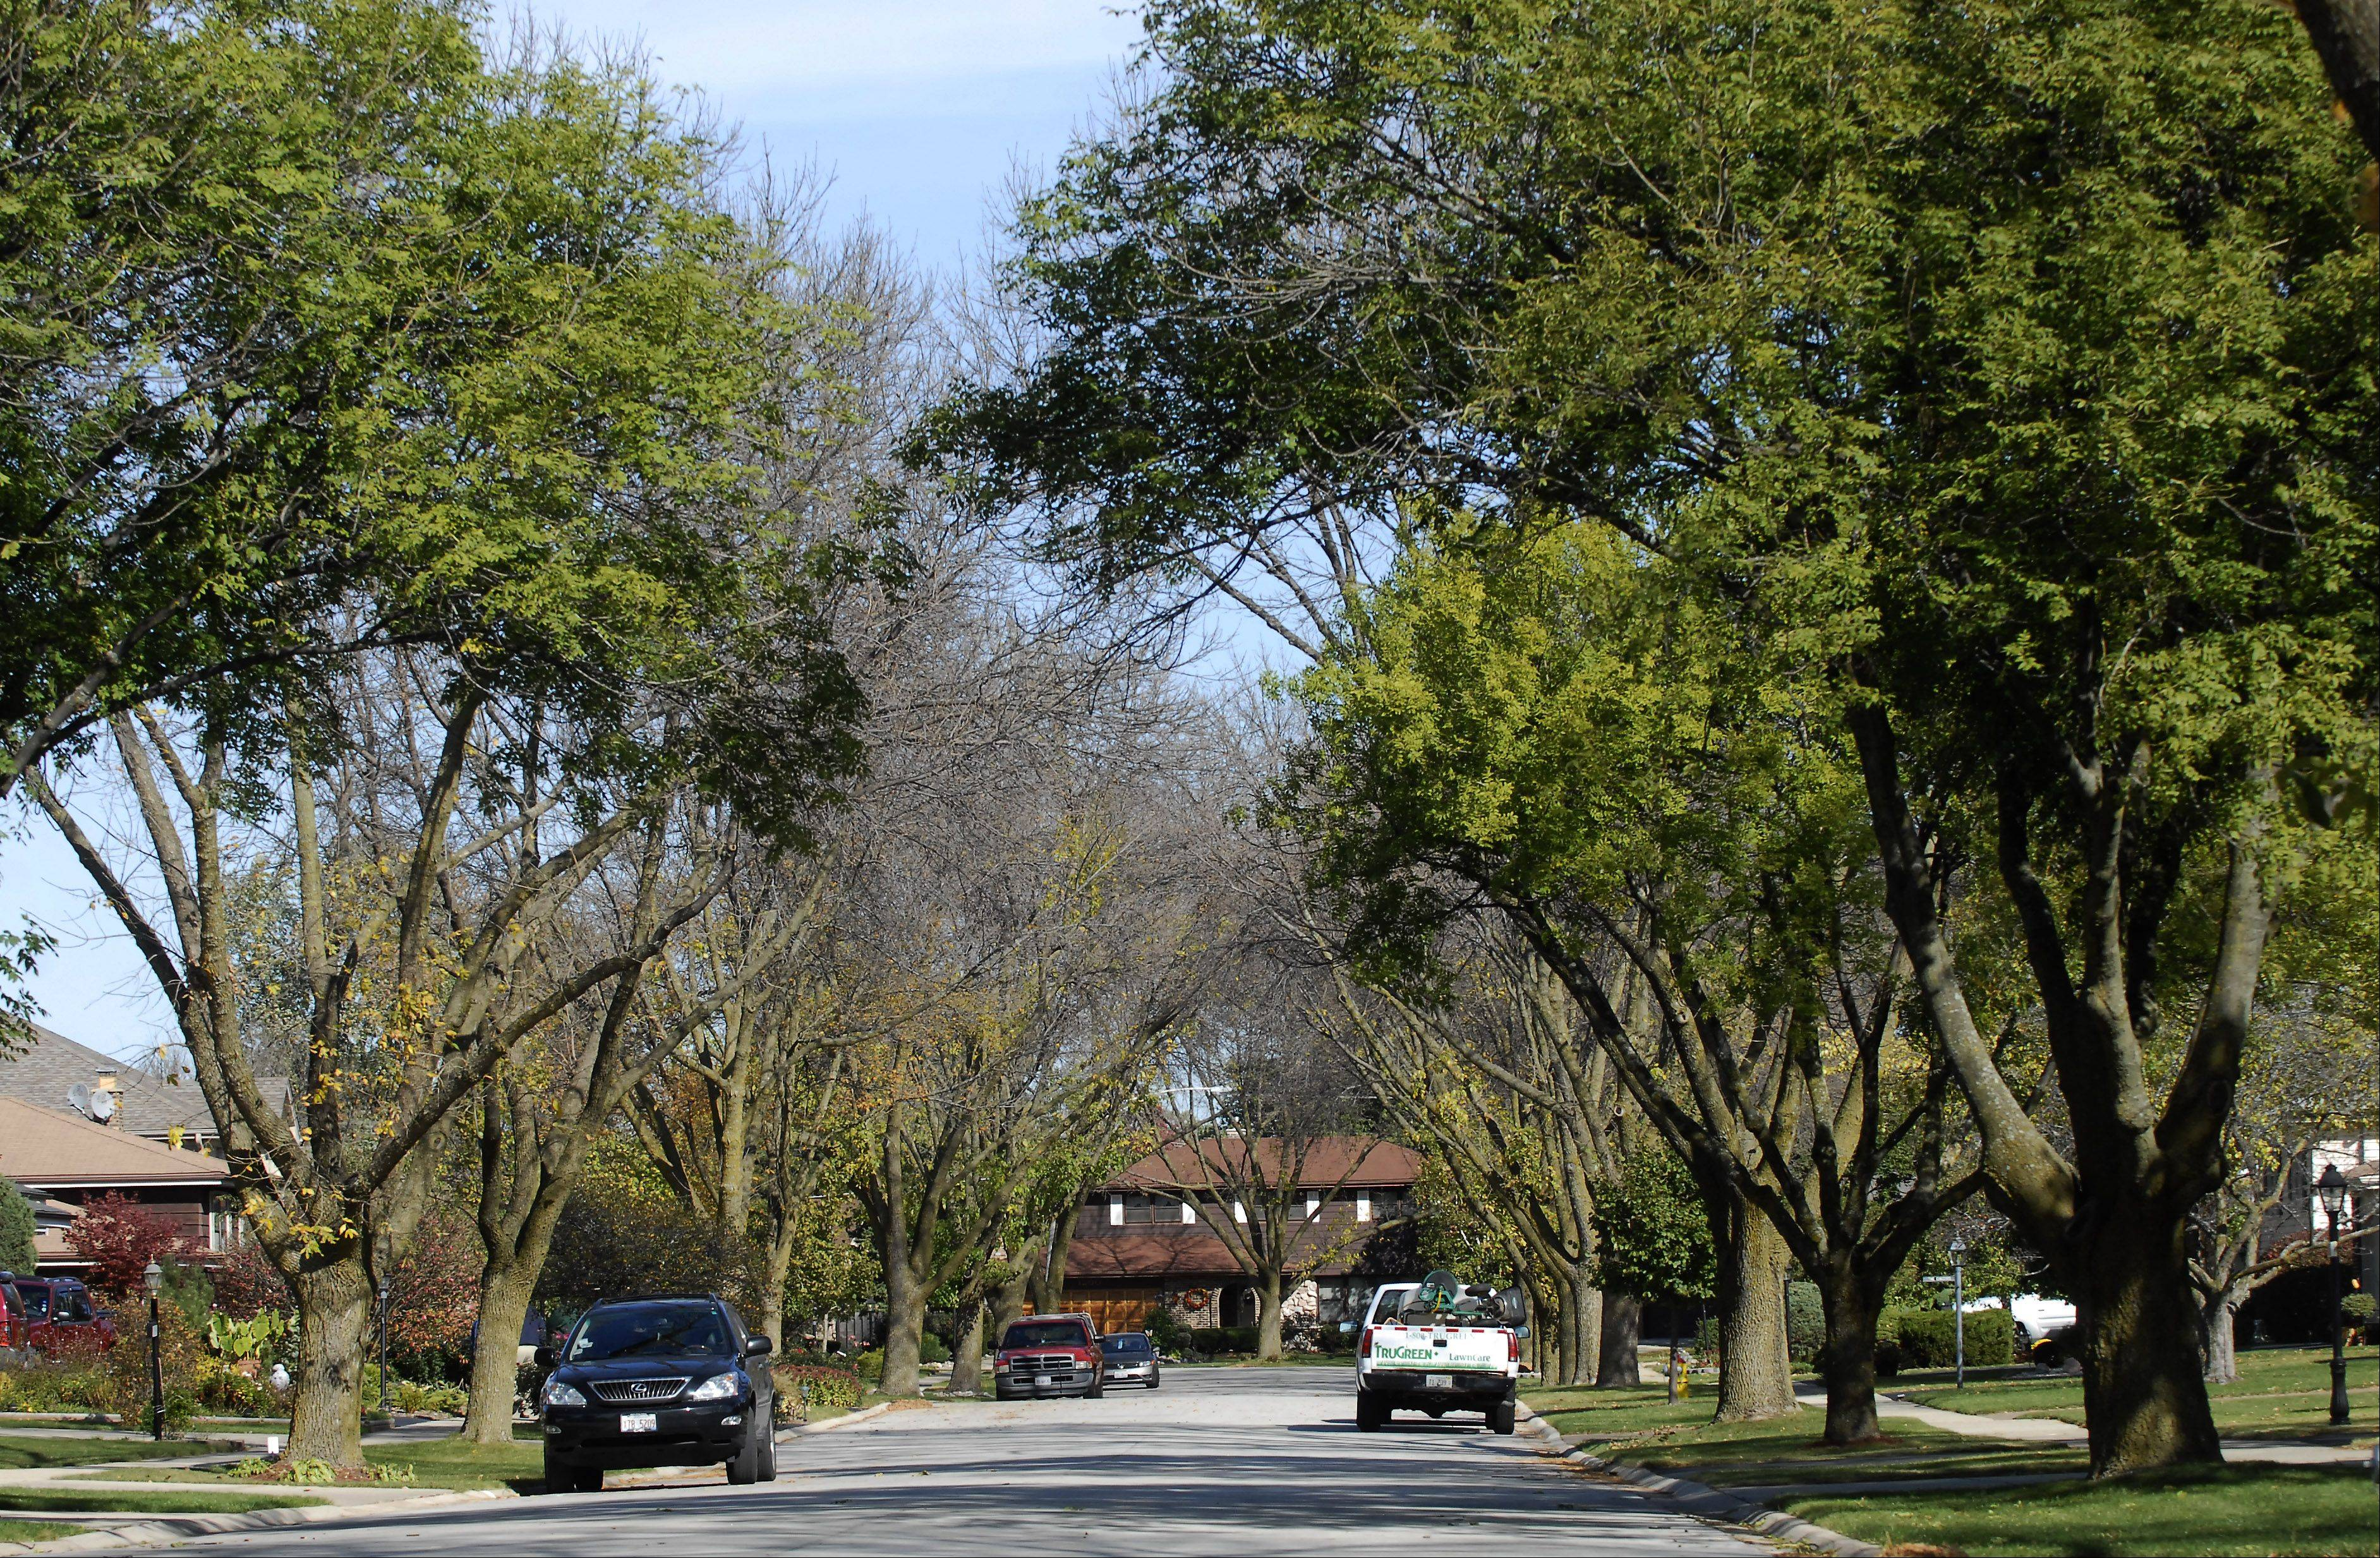 Mount Prospect adopts new tree-management plan